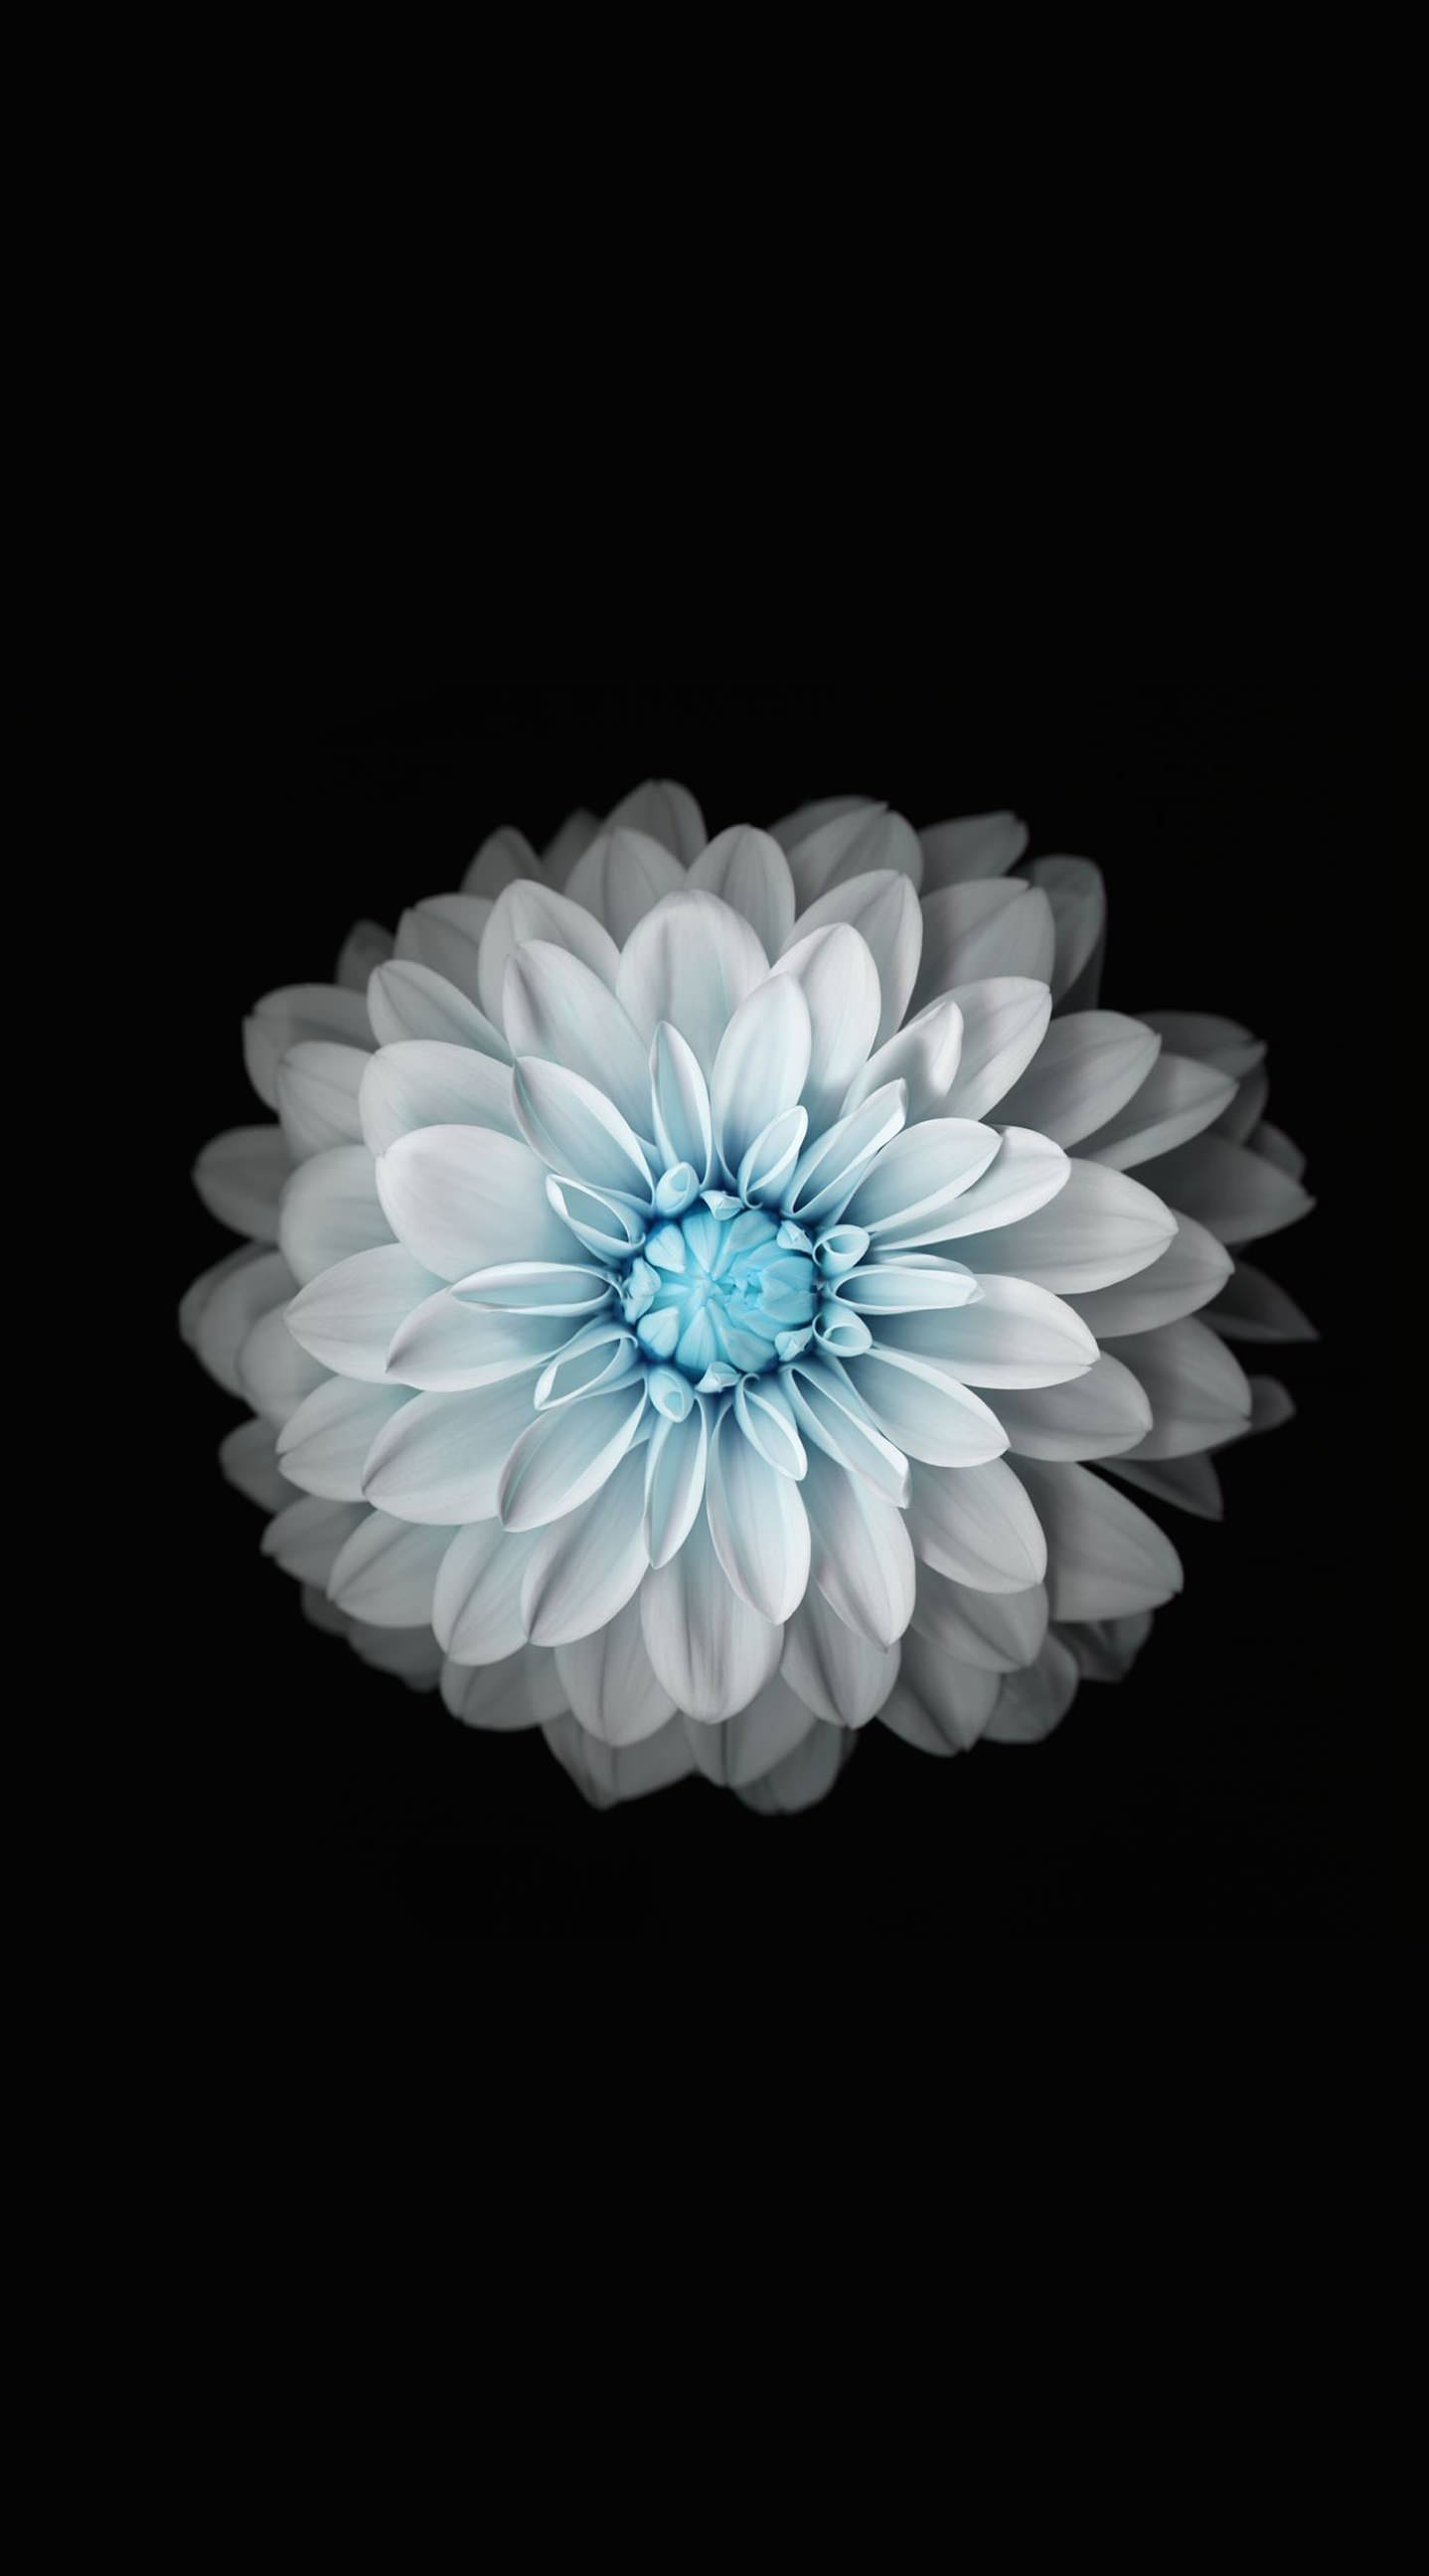 Flower black and white wallpapersc iPhone6sPlus 1438x2592